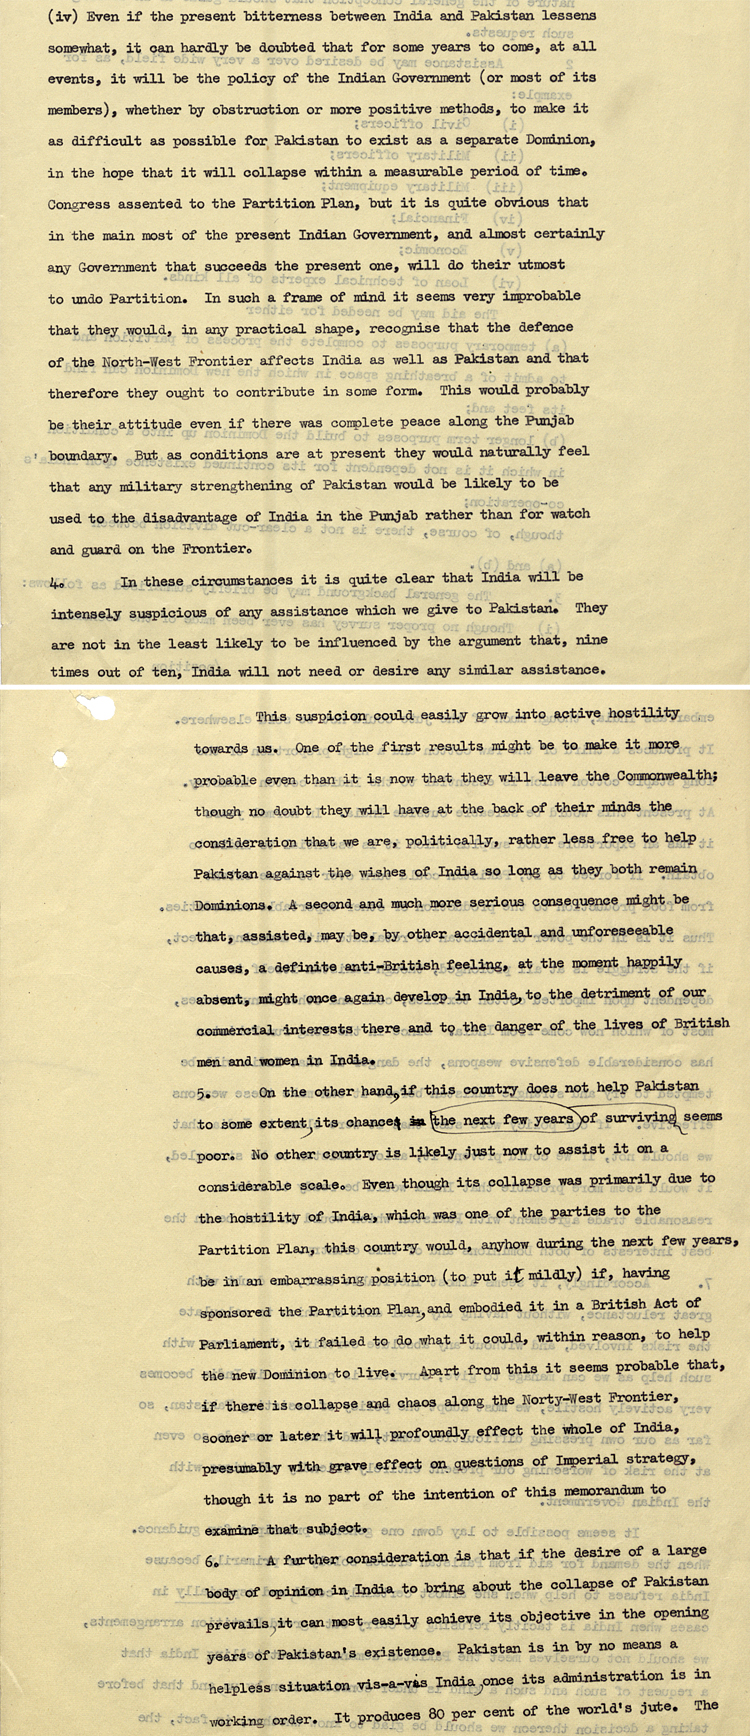 Analysis from British government on likely future relations between India and Pakistan, 20th October 1947 (DO 121/69)